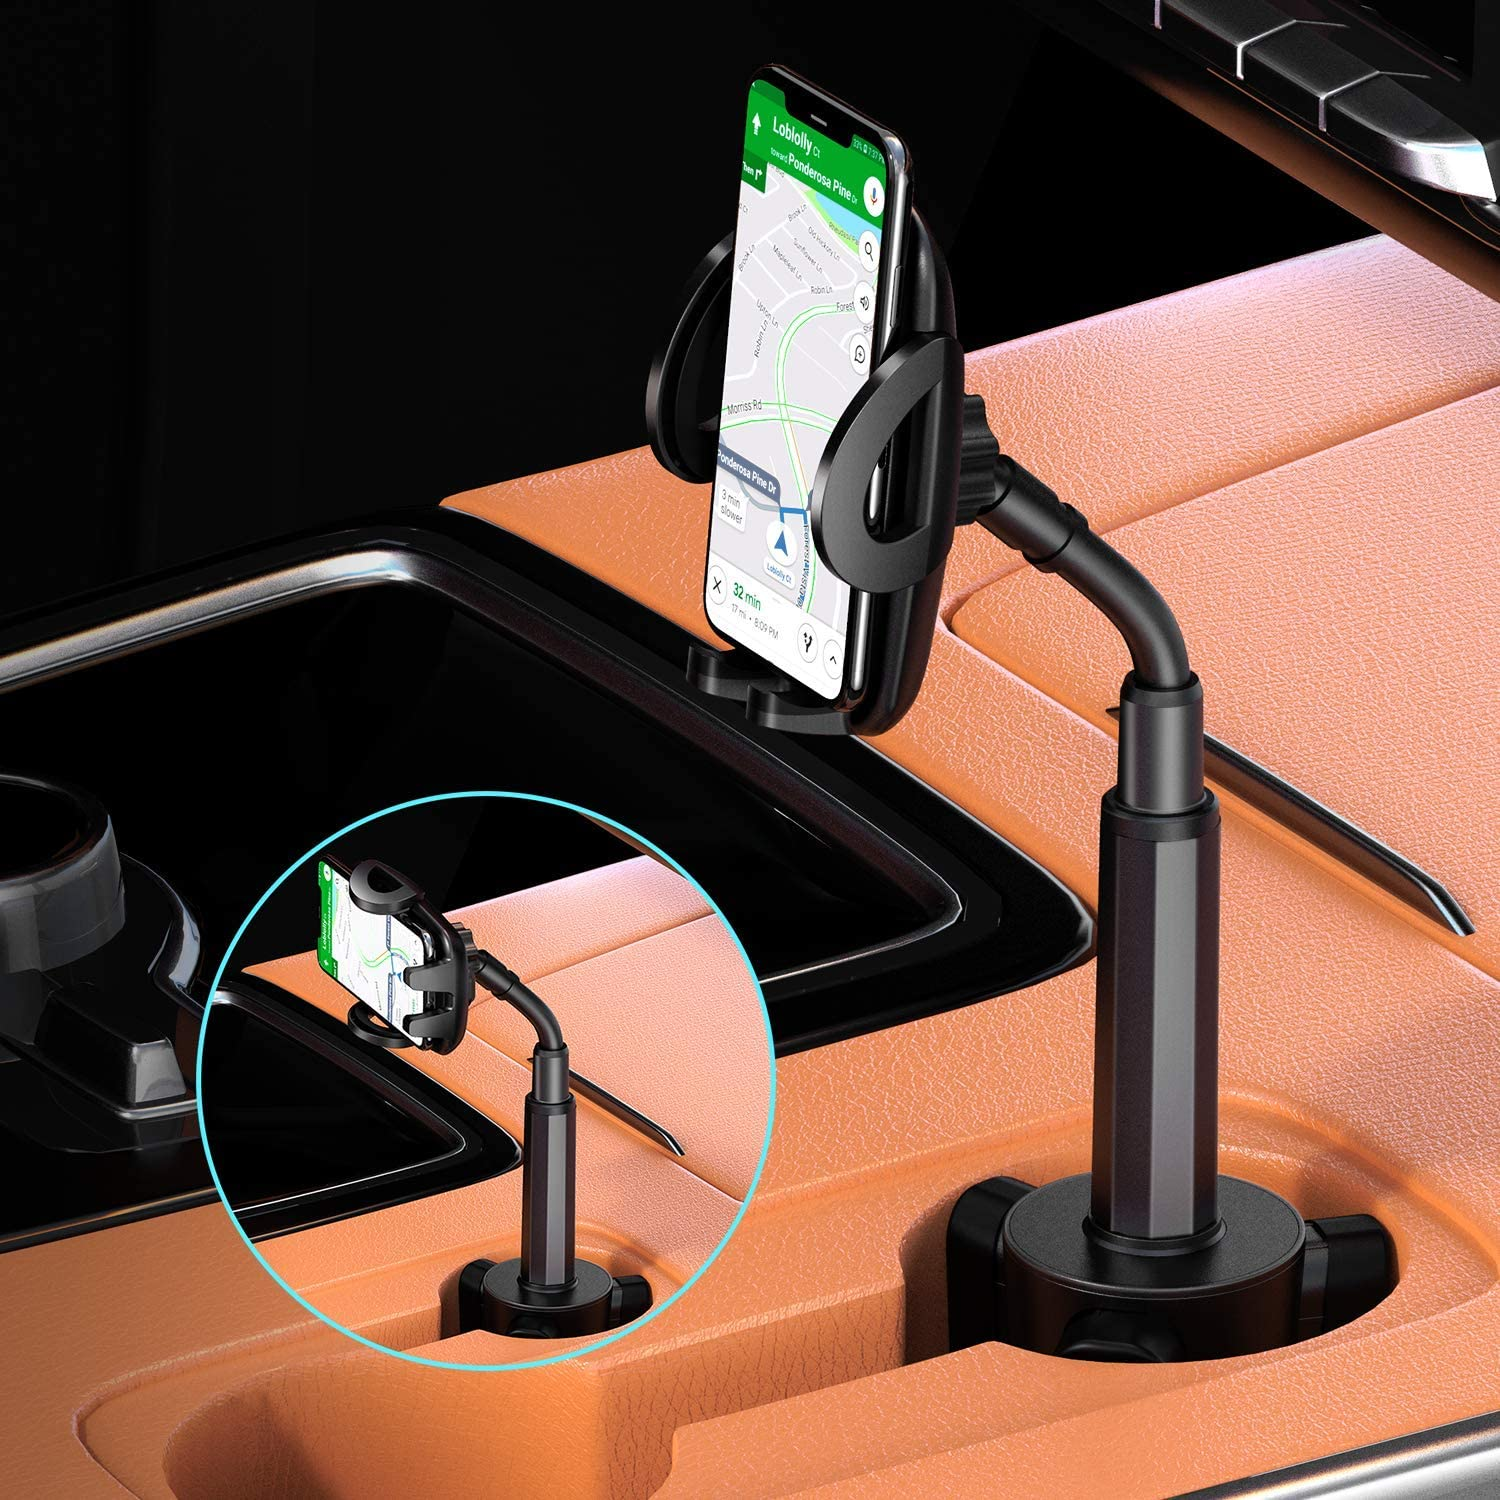 Facbiny Adjustable Universal Cup Holder 360/° Rotatable Smart Phone Cradle Car Mount for iPhone 11 Pro//XS//XR//X//8//7 Plus//6s Galaxy S20//S10//S9//S8//S7 Edge Car Cup Holder Cell Phone Mount